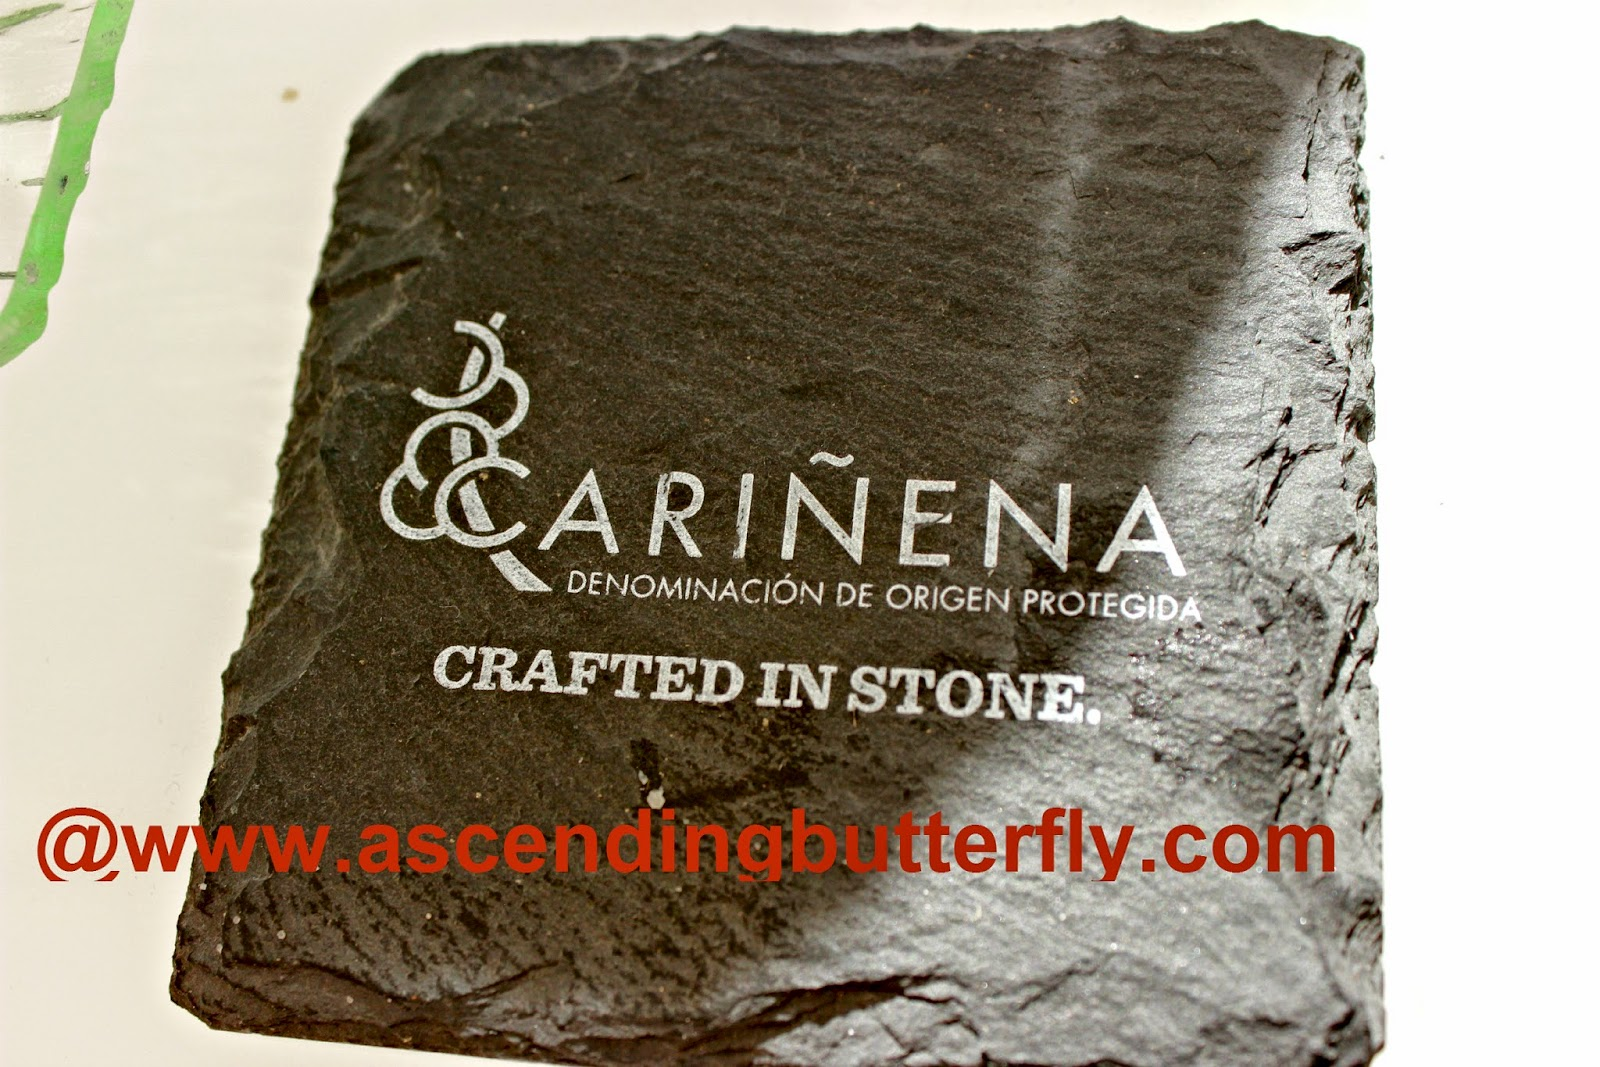 Cariñena Crafted in Stone